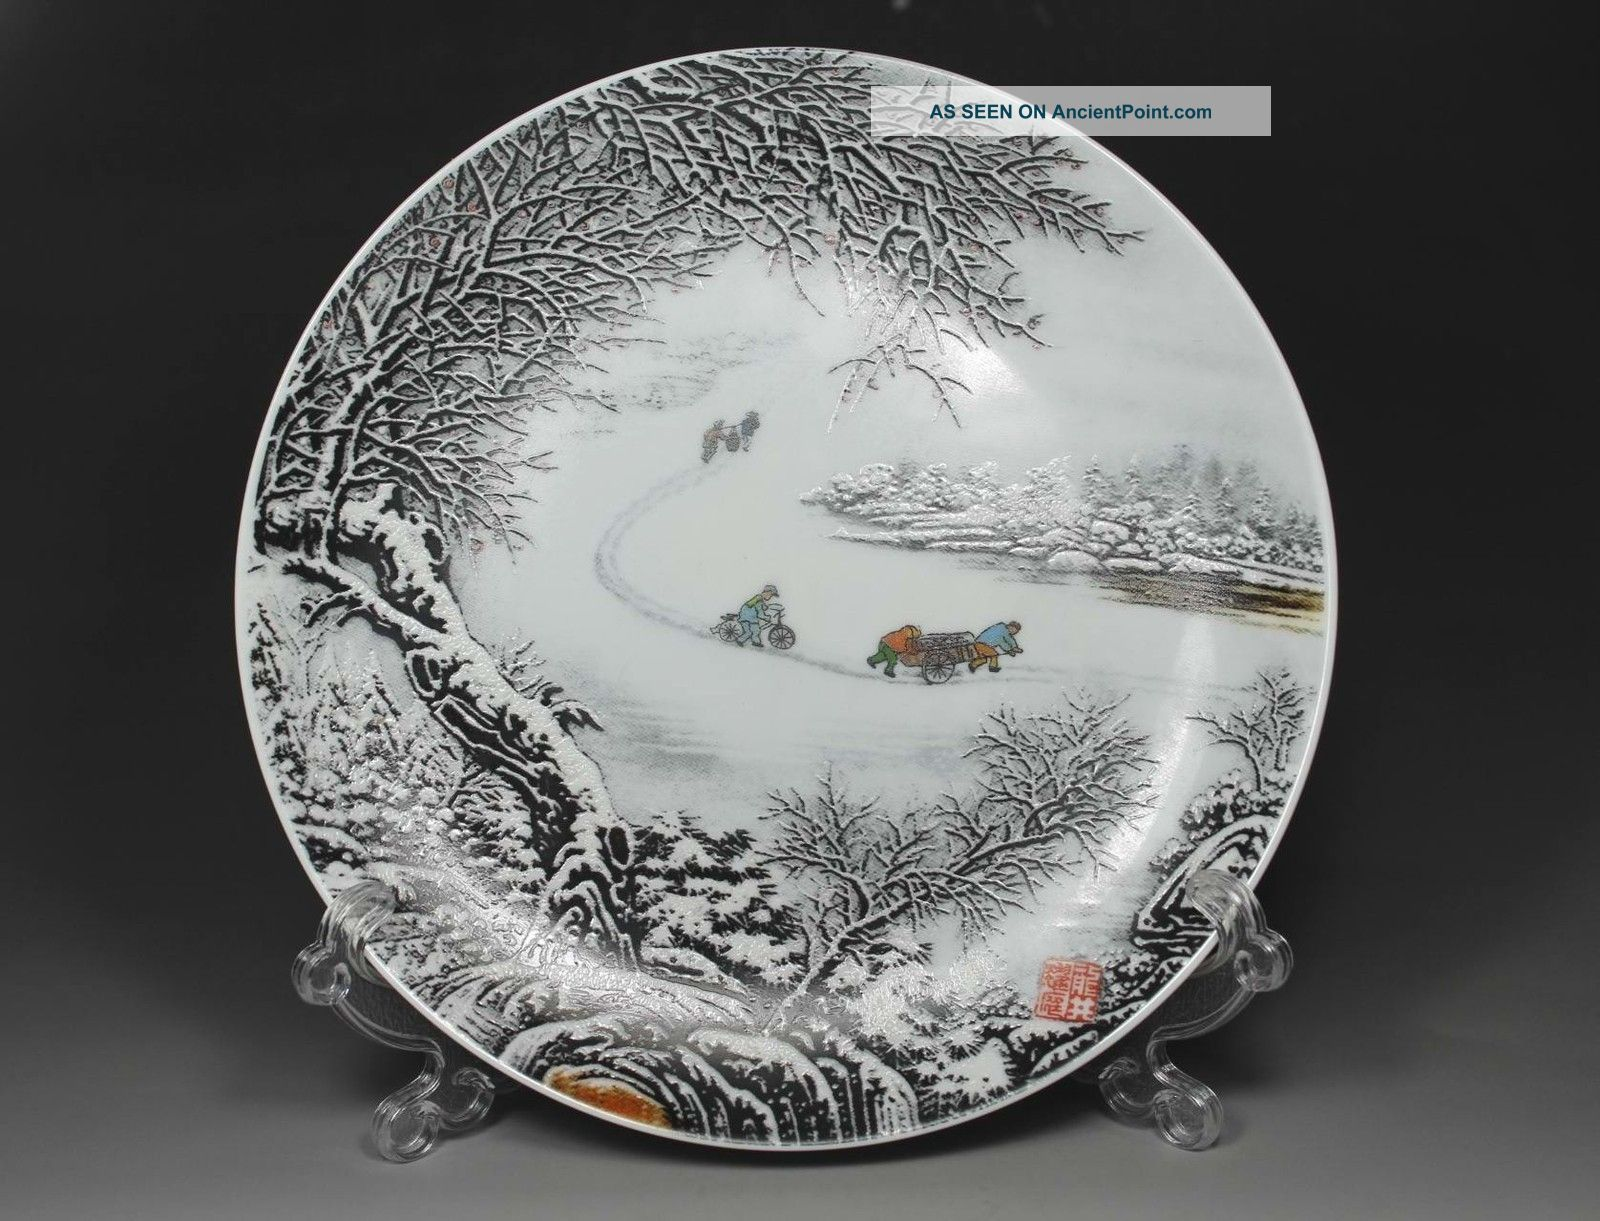 Chinese Old Porcelain Handwork Painting Snow - Covered Landscape Decoration Plate Uncategorized photo